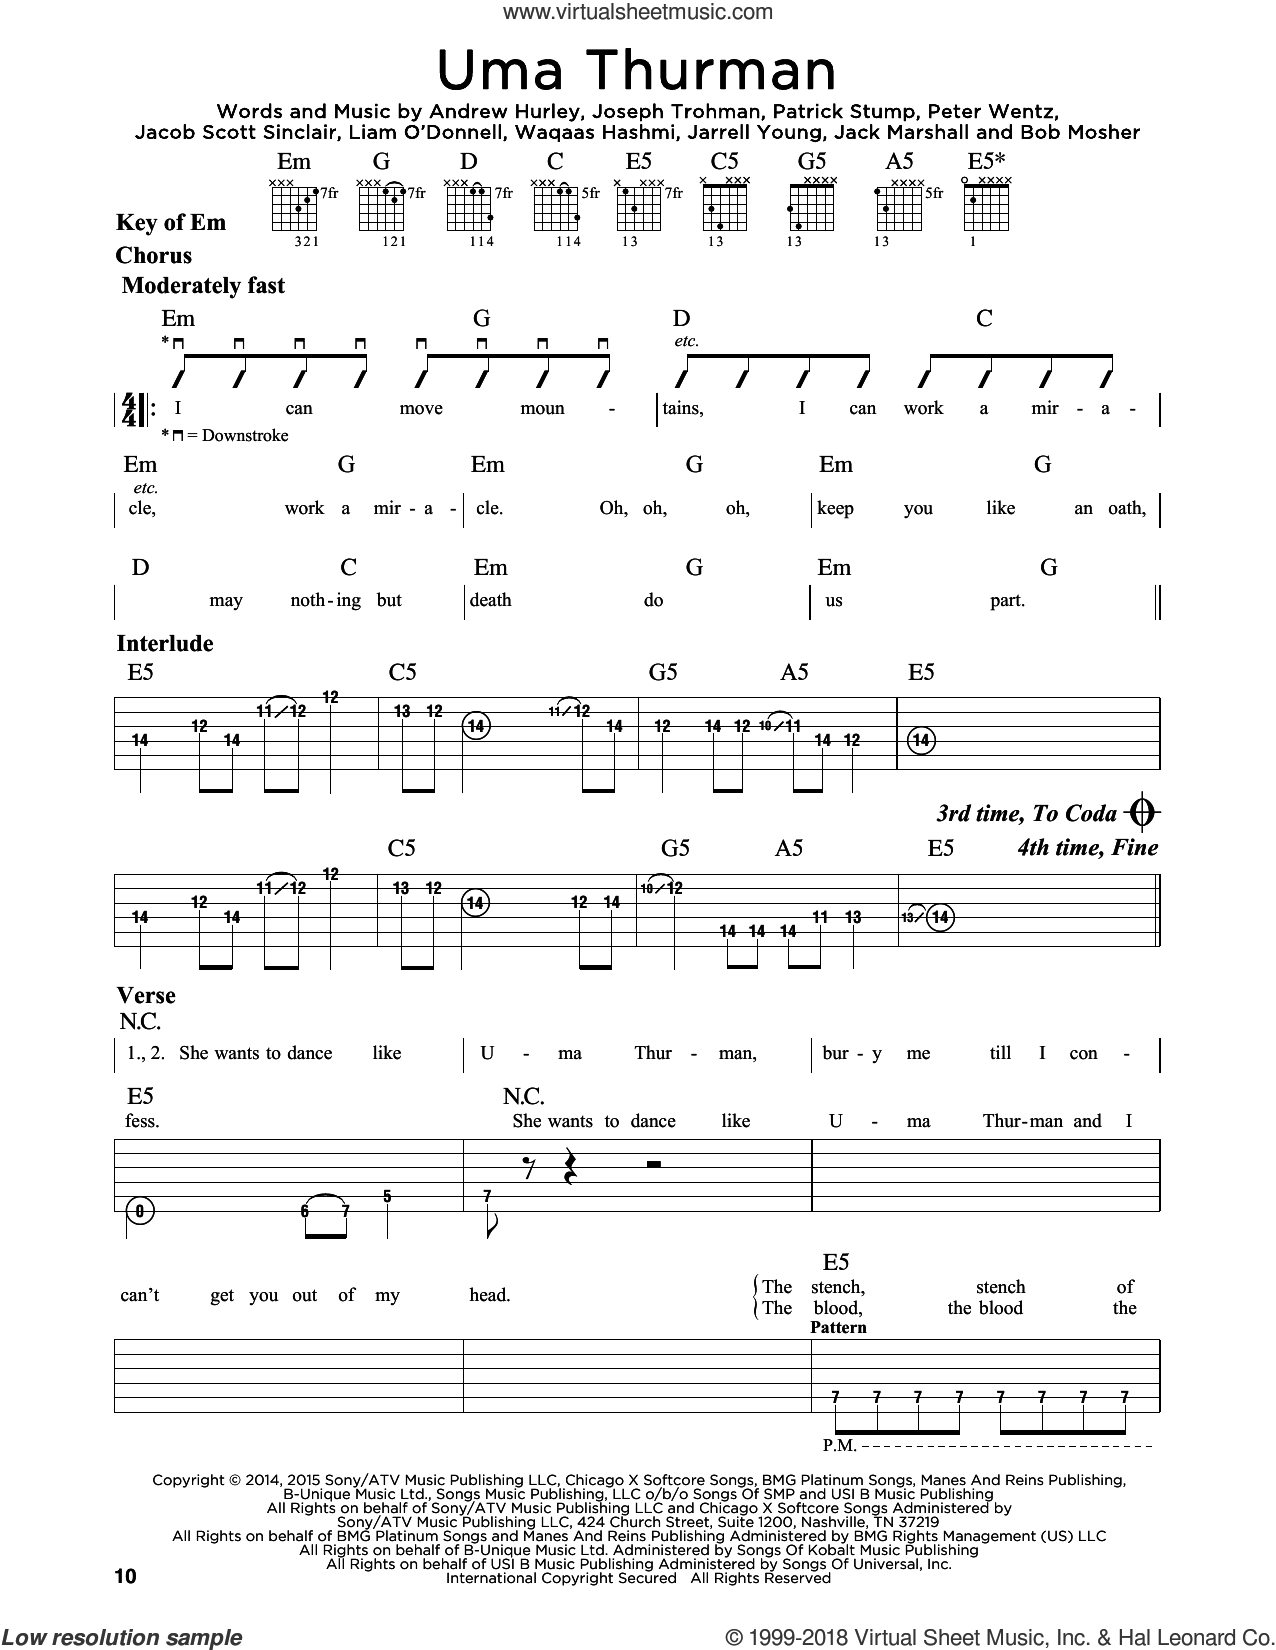 Uma Thurman sheet music for guitar solo (lead sheet) by Waqaas Hashmi, Fall Out Boy, Andrew Hurley, Jack Marshall and Peter Wentz. Score Image Preview.